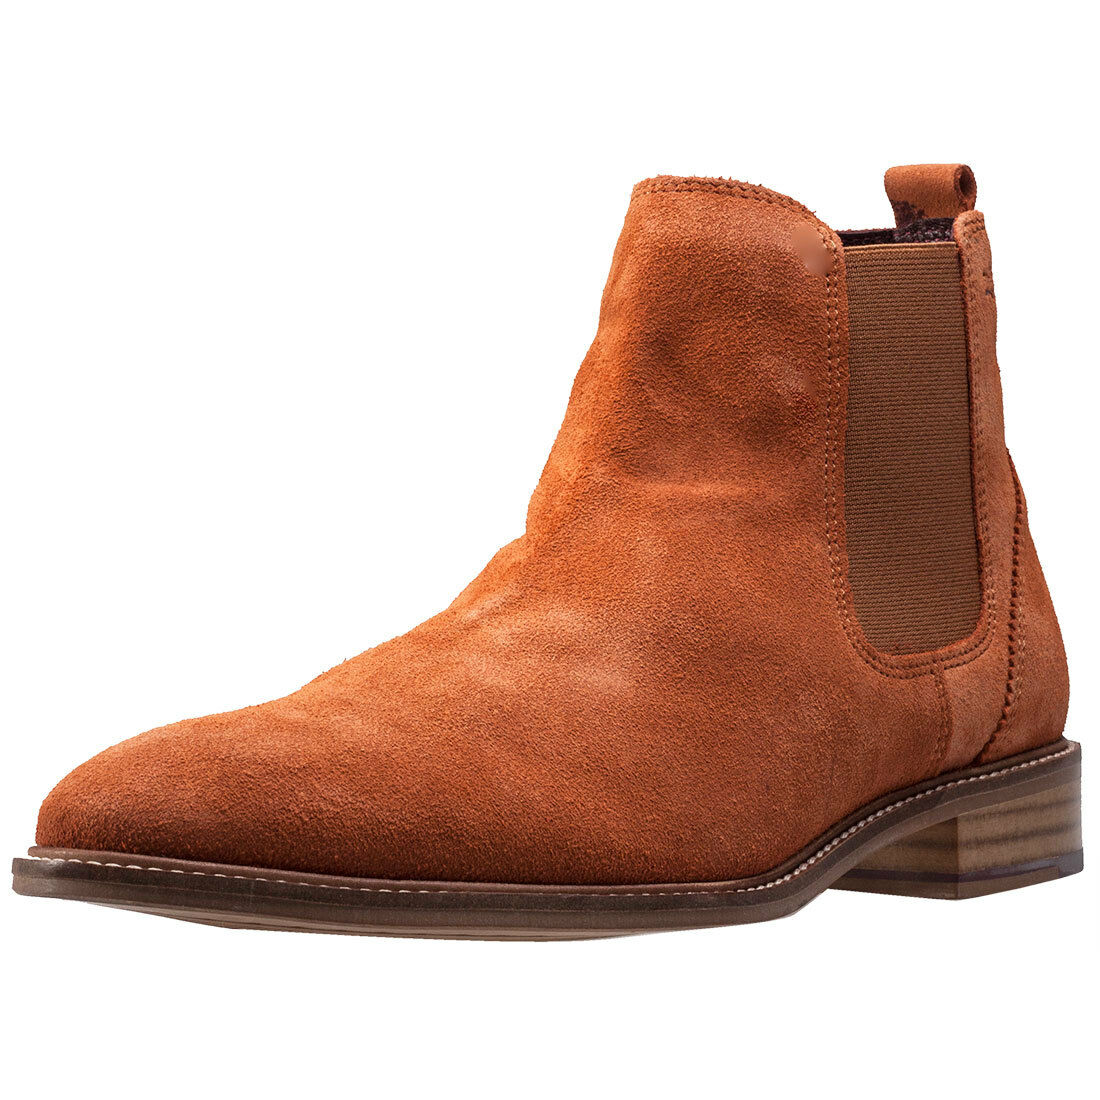 Chaussures Hamilton Homme Homme Homme Tan Suede chelsea boots | Online Store  44eefe